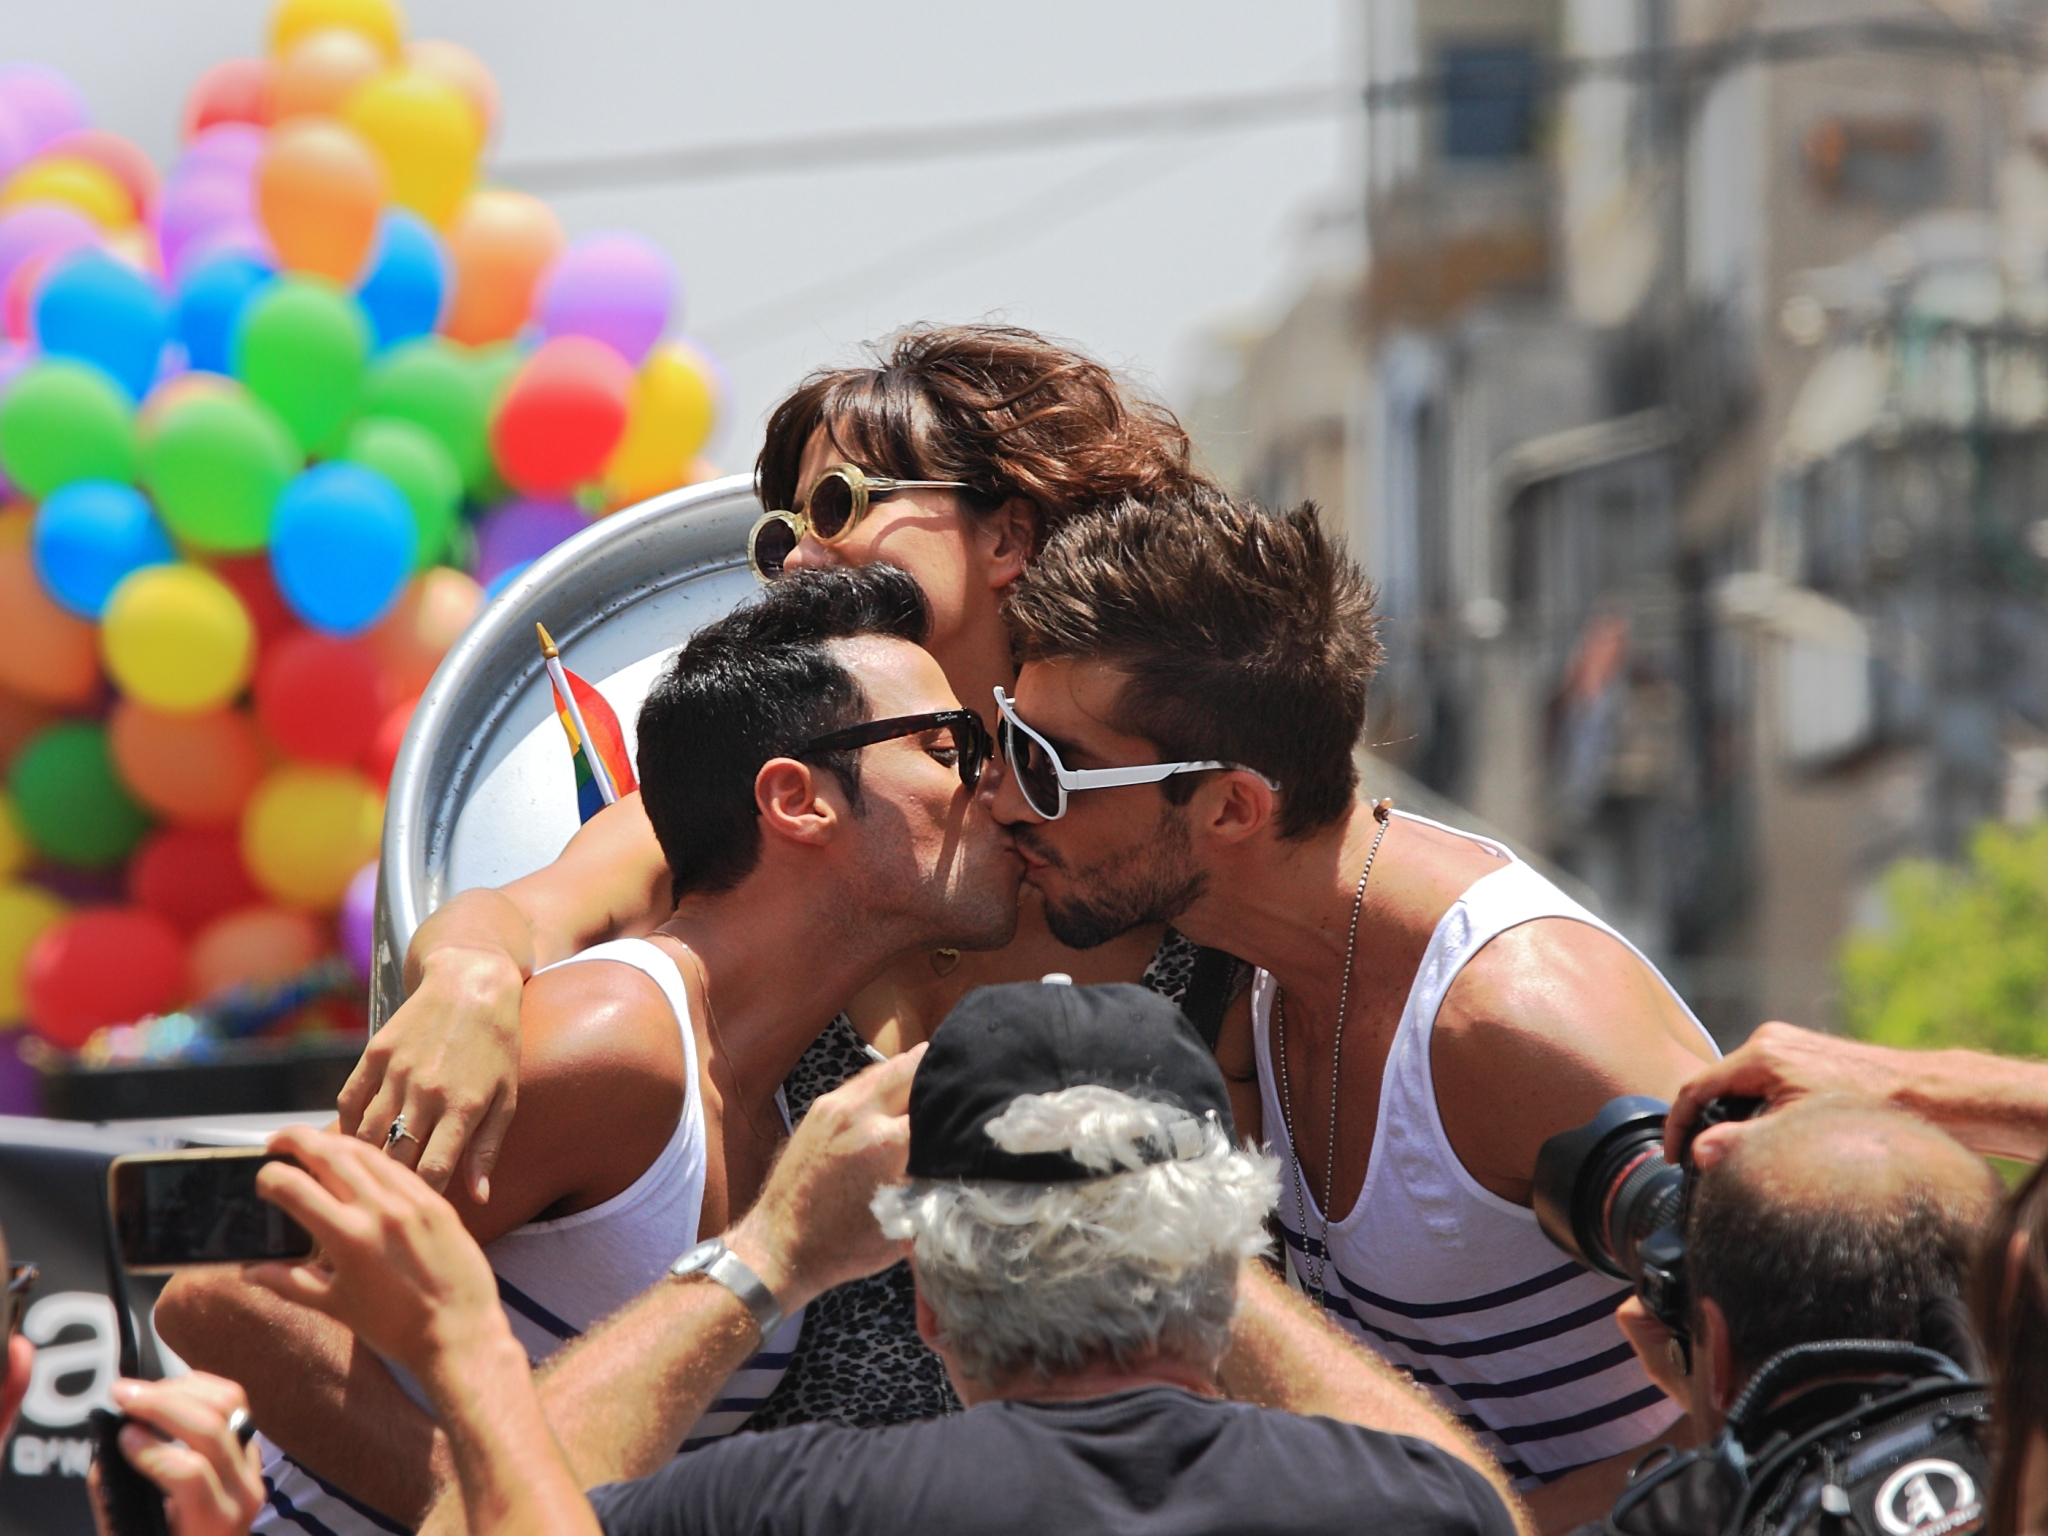 A tour of the gay-friendliest cities in Israel